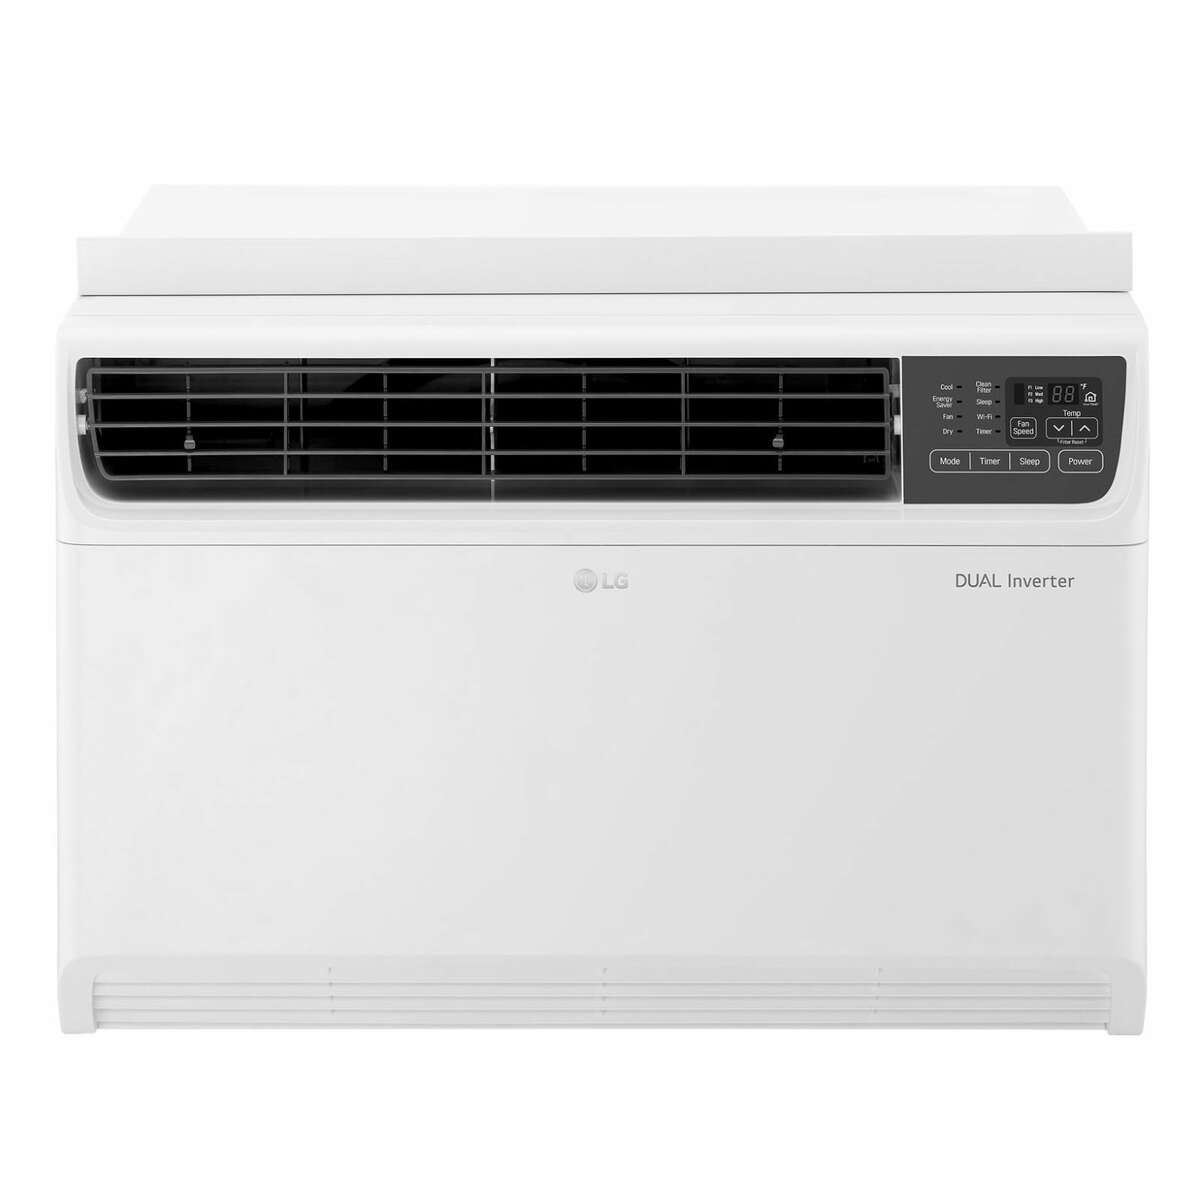 1) LG LW1817IVSM Dual Inverter Smart Window Air Conditioner: $599.99 Shop Now If you're looking for a window install, this smart air conditioner by LG is your best bet. It has an elegant design and superb cooling performance, and the model operates more quietly than any competitor, courtesy of LG's proprietary Dual Inverter tech. It consists of a uniquely designed motor and compressor, which work together in perfect (and quiet) harmony. The device is compatible with voice commands from both Amazon Alexa and Google Assistant. You can also control it via LG's SmartThinQ mobile app, which allows you to control the air conditioner's settings while also keeping tabs on the exact temperature of the room it's operating in. This variant of the LG Dual Inverter smart window air conditioner has a maximum cooling capacity of 18,000 BTU - enough to effortlessly cool up to 1,000 square feet of living space.More: Our Favorite Smart Home Products